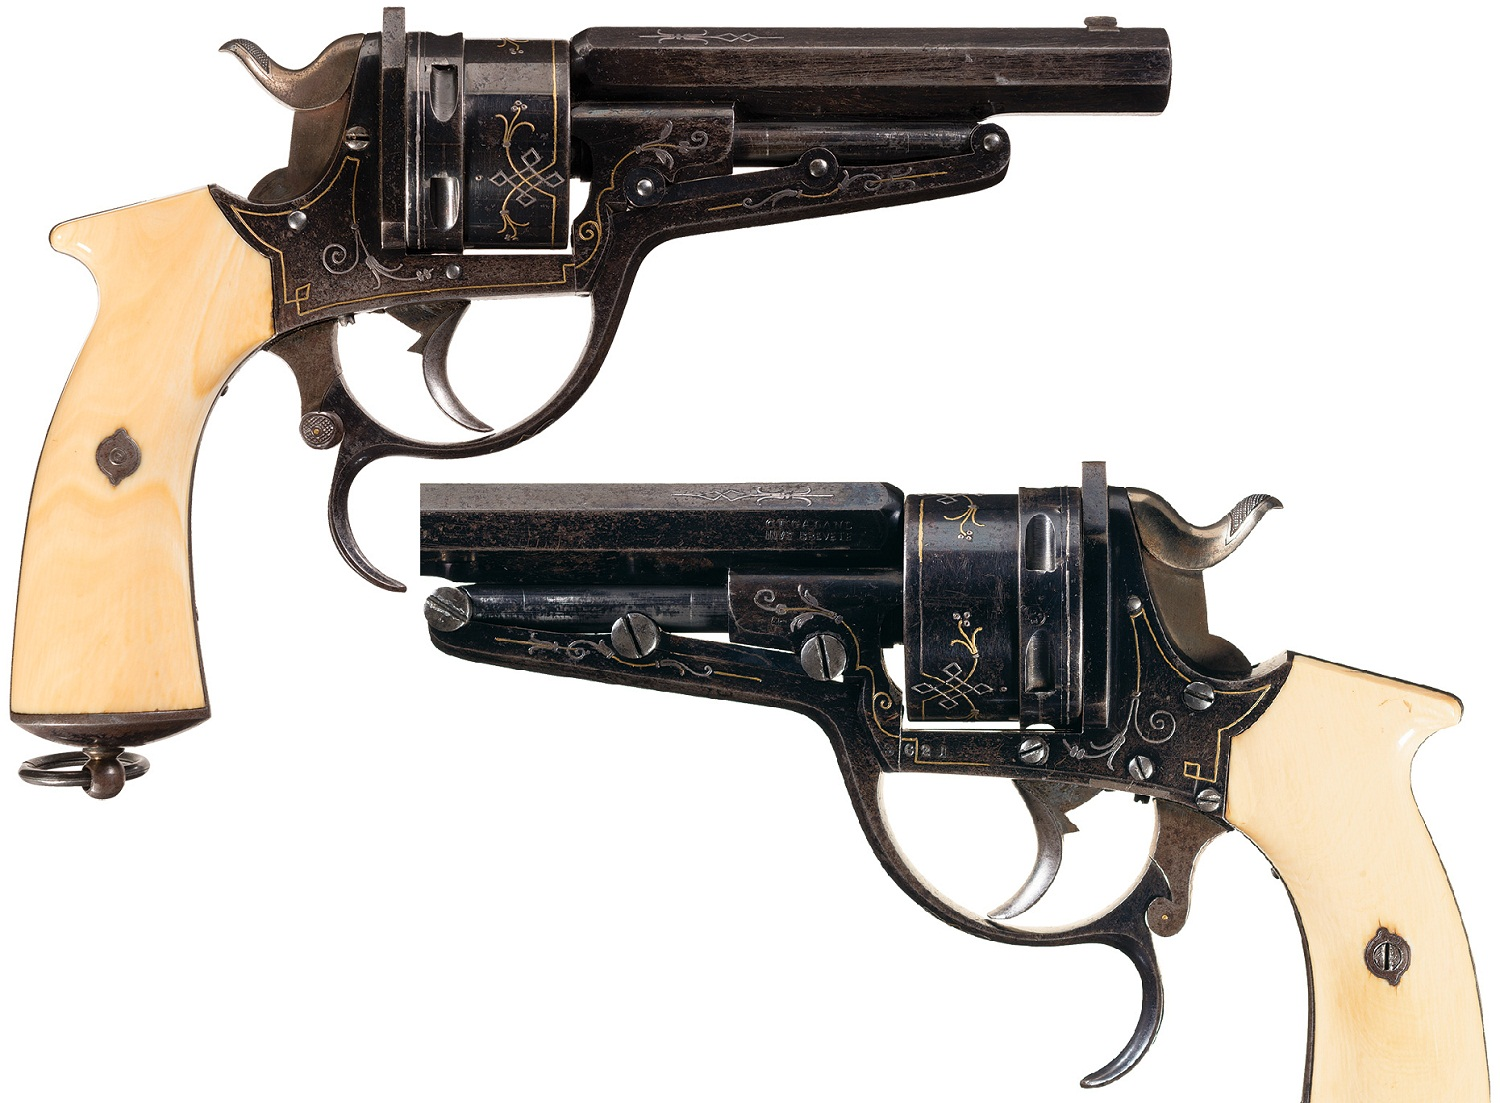 Silver and Gold Inlaid Galand Double Action Revolver